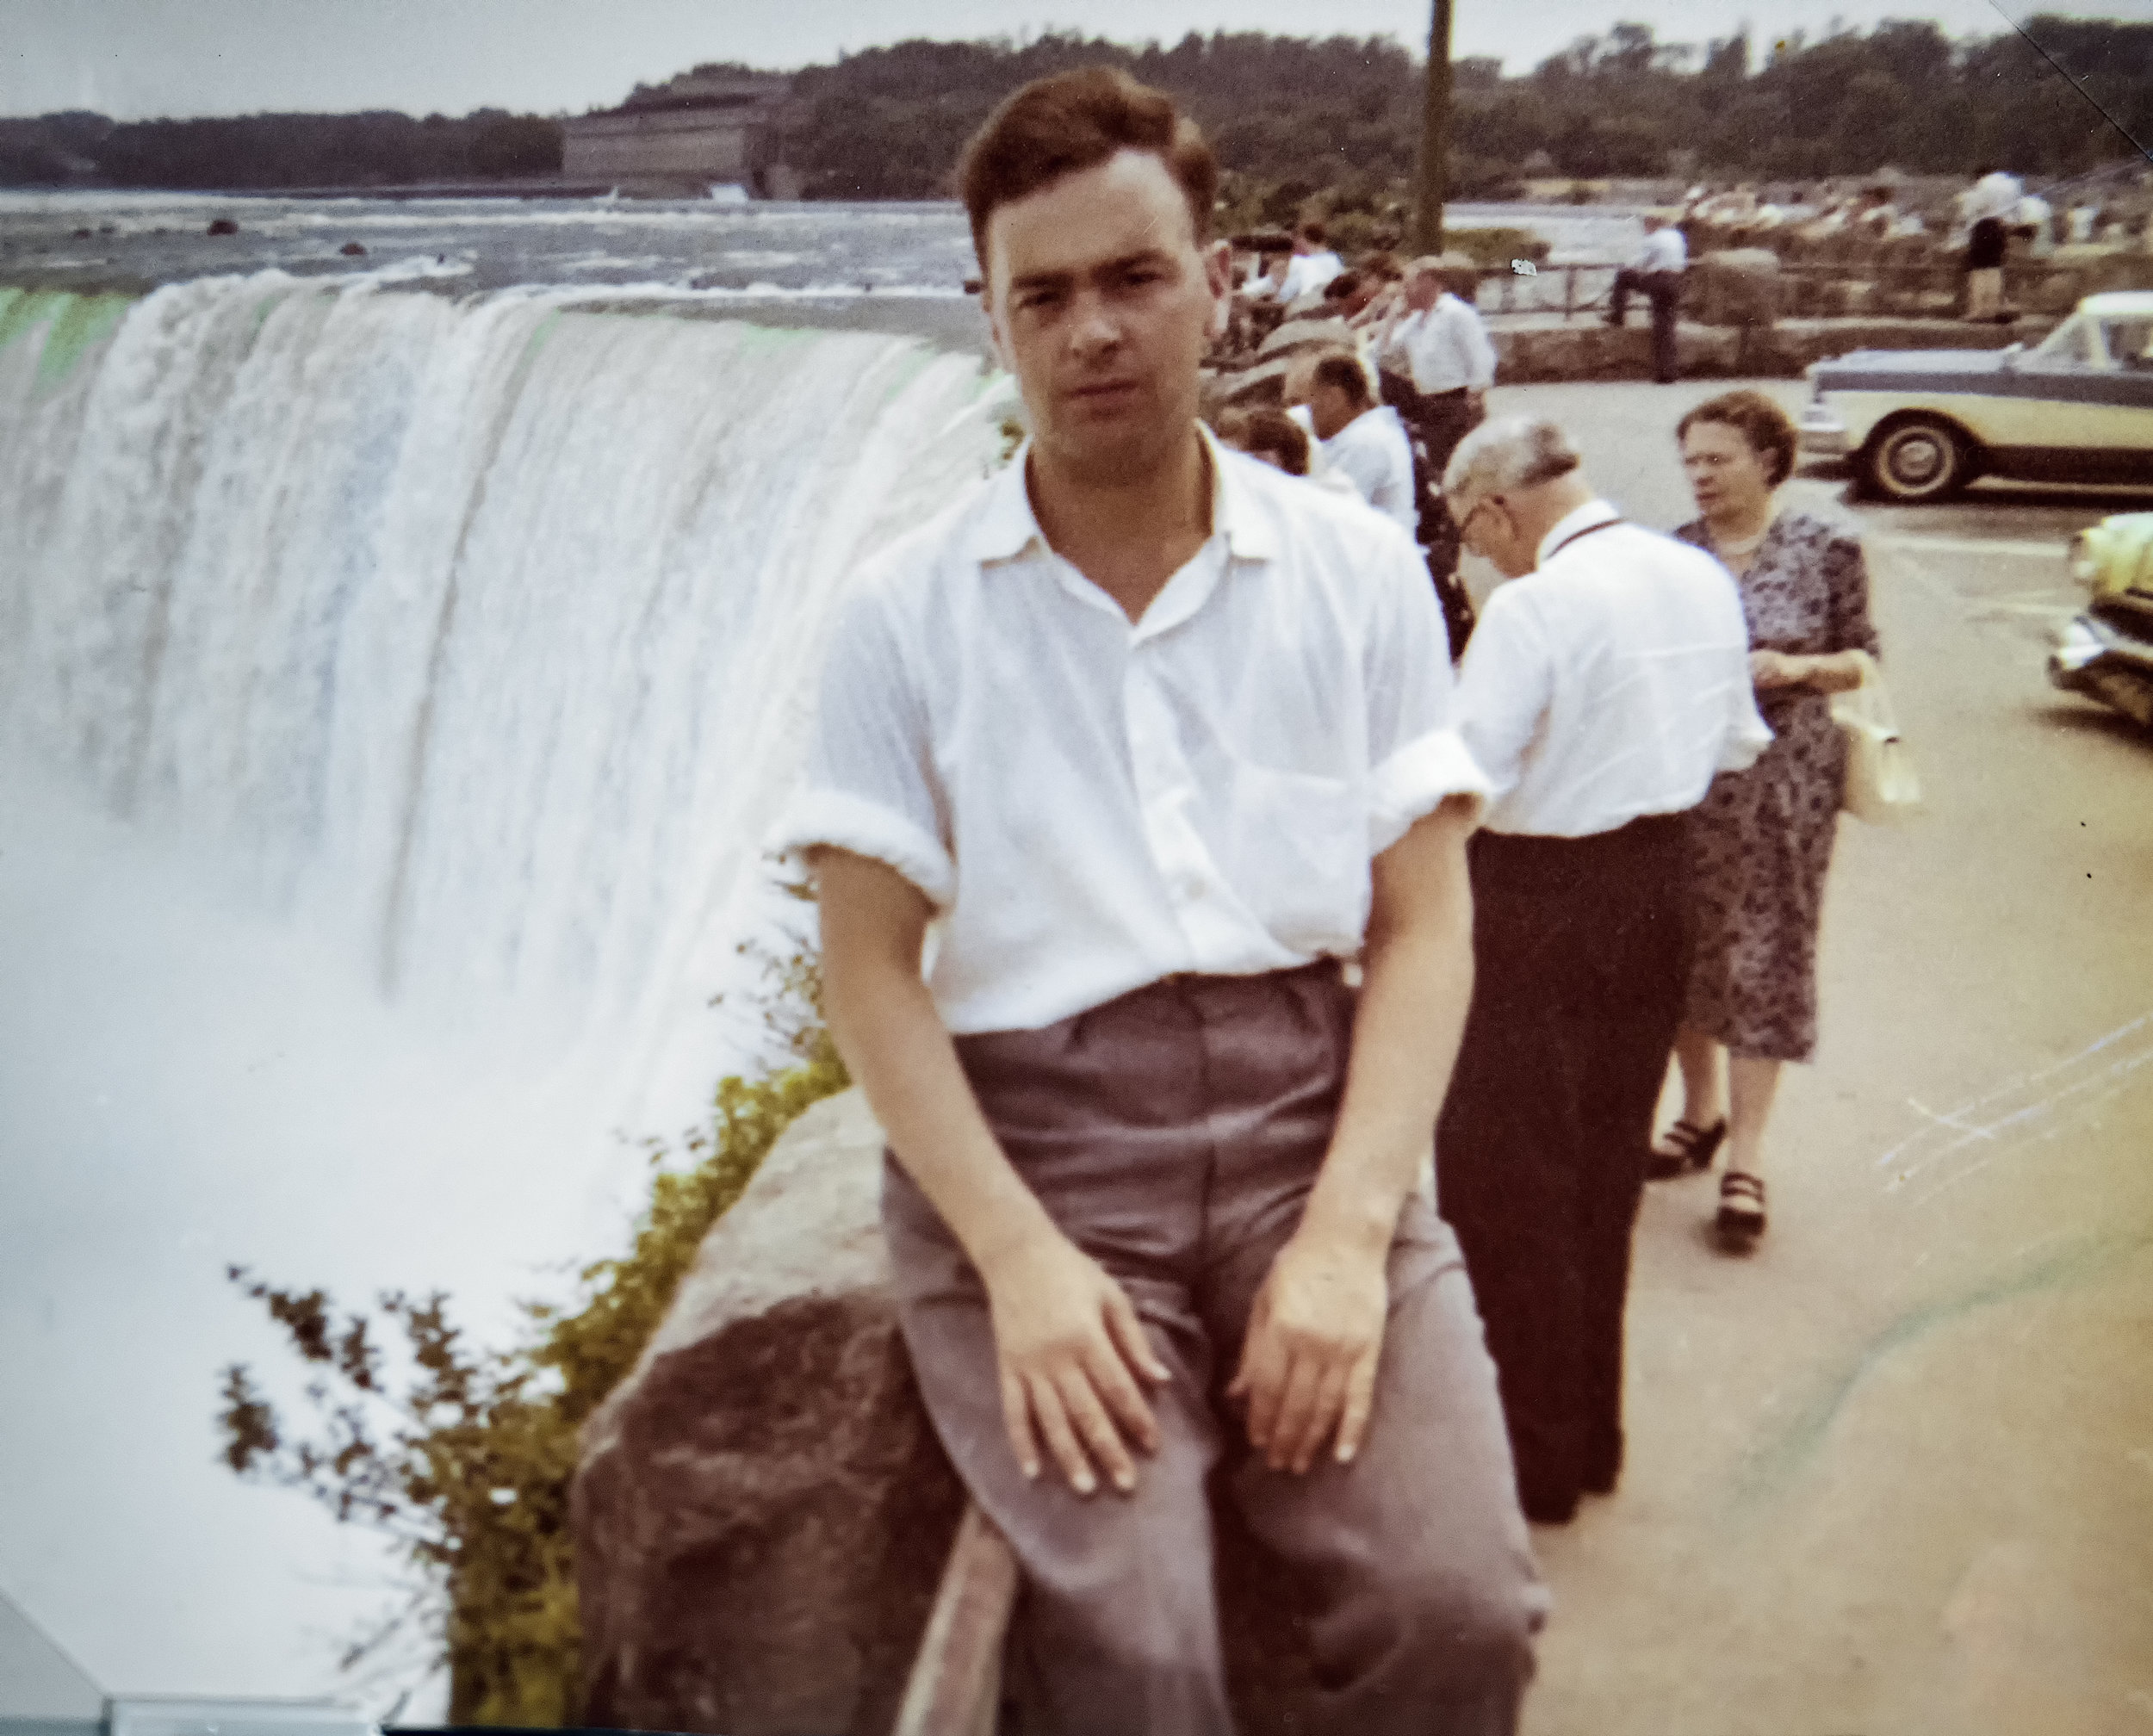 My dad in the late 50's, early 60's on a road trip to Niagara falls